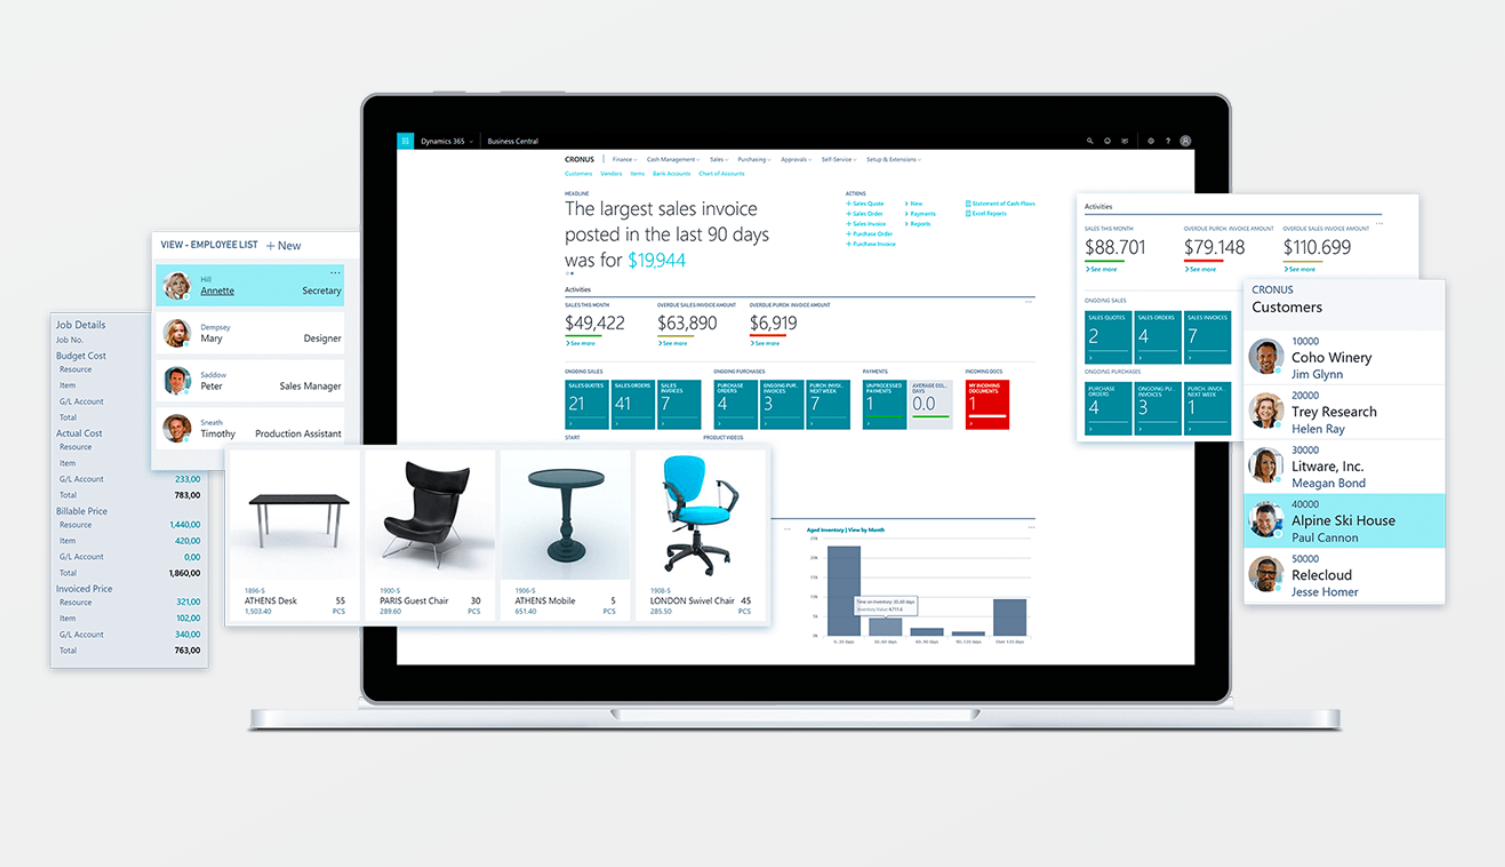 Navision is now Microsoft Business Central